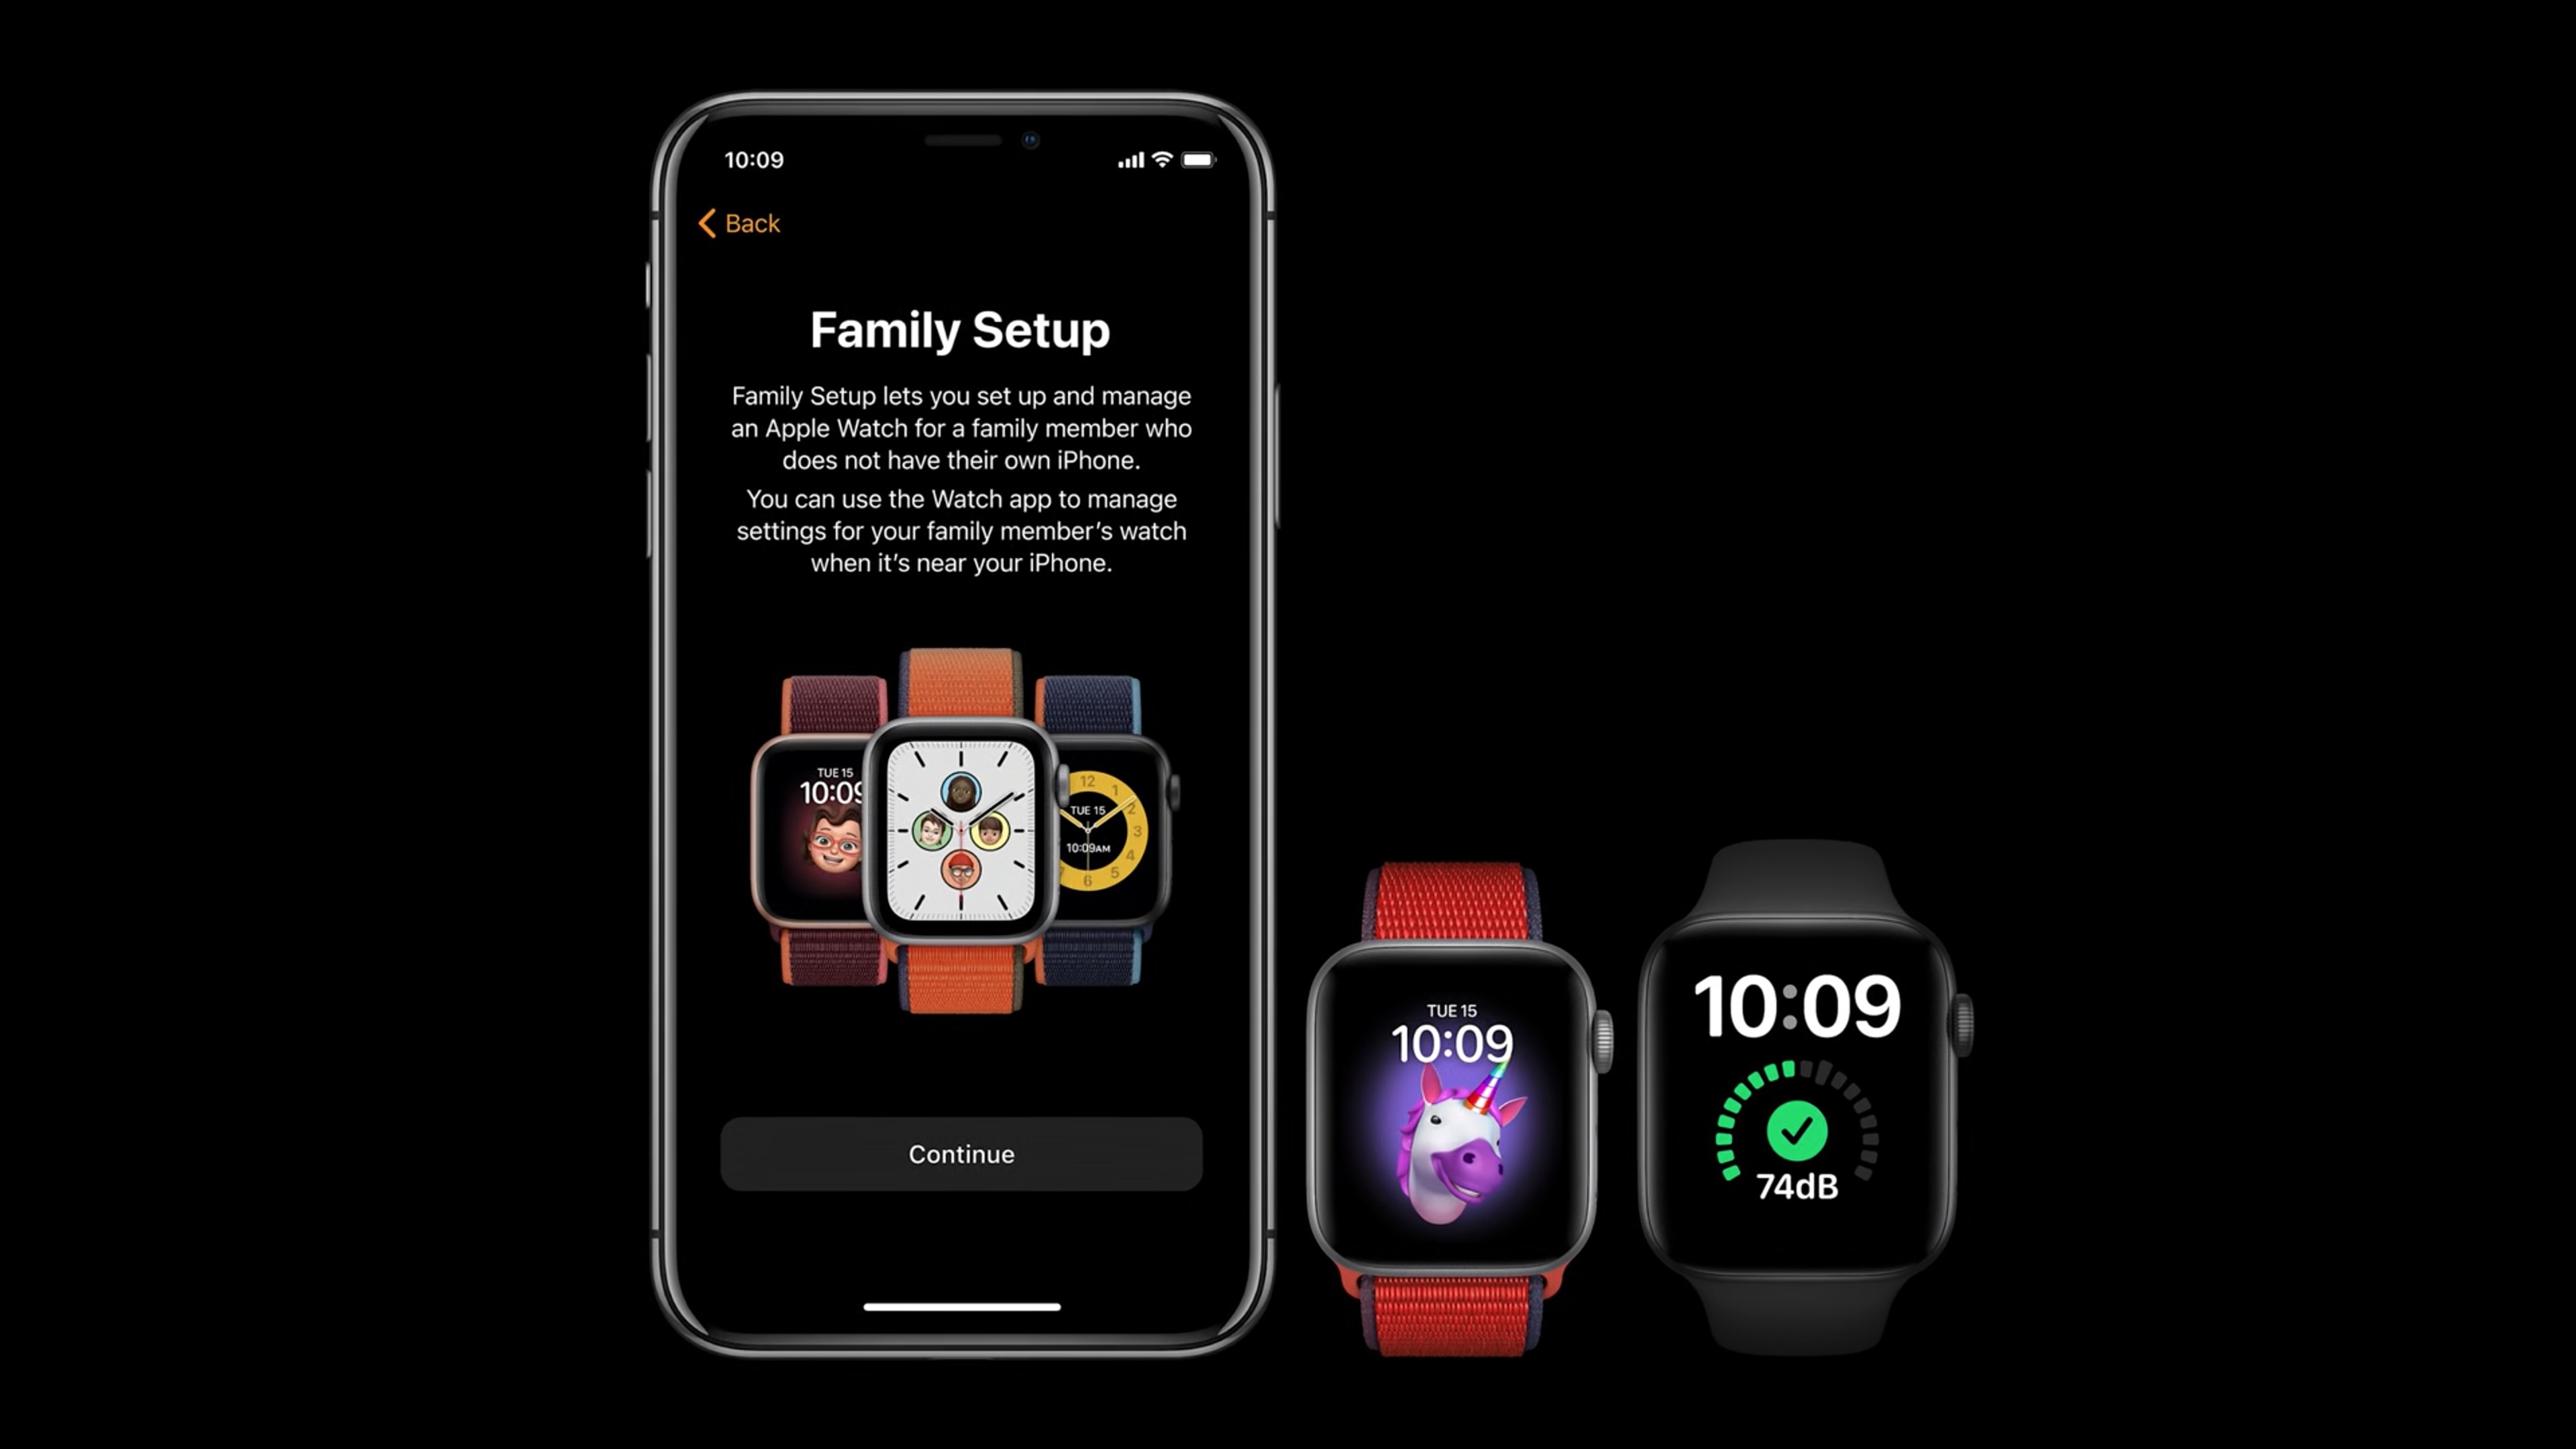 Family Setup will work with Apple Watch Series 4 and greater (and certain launch partners)